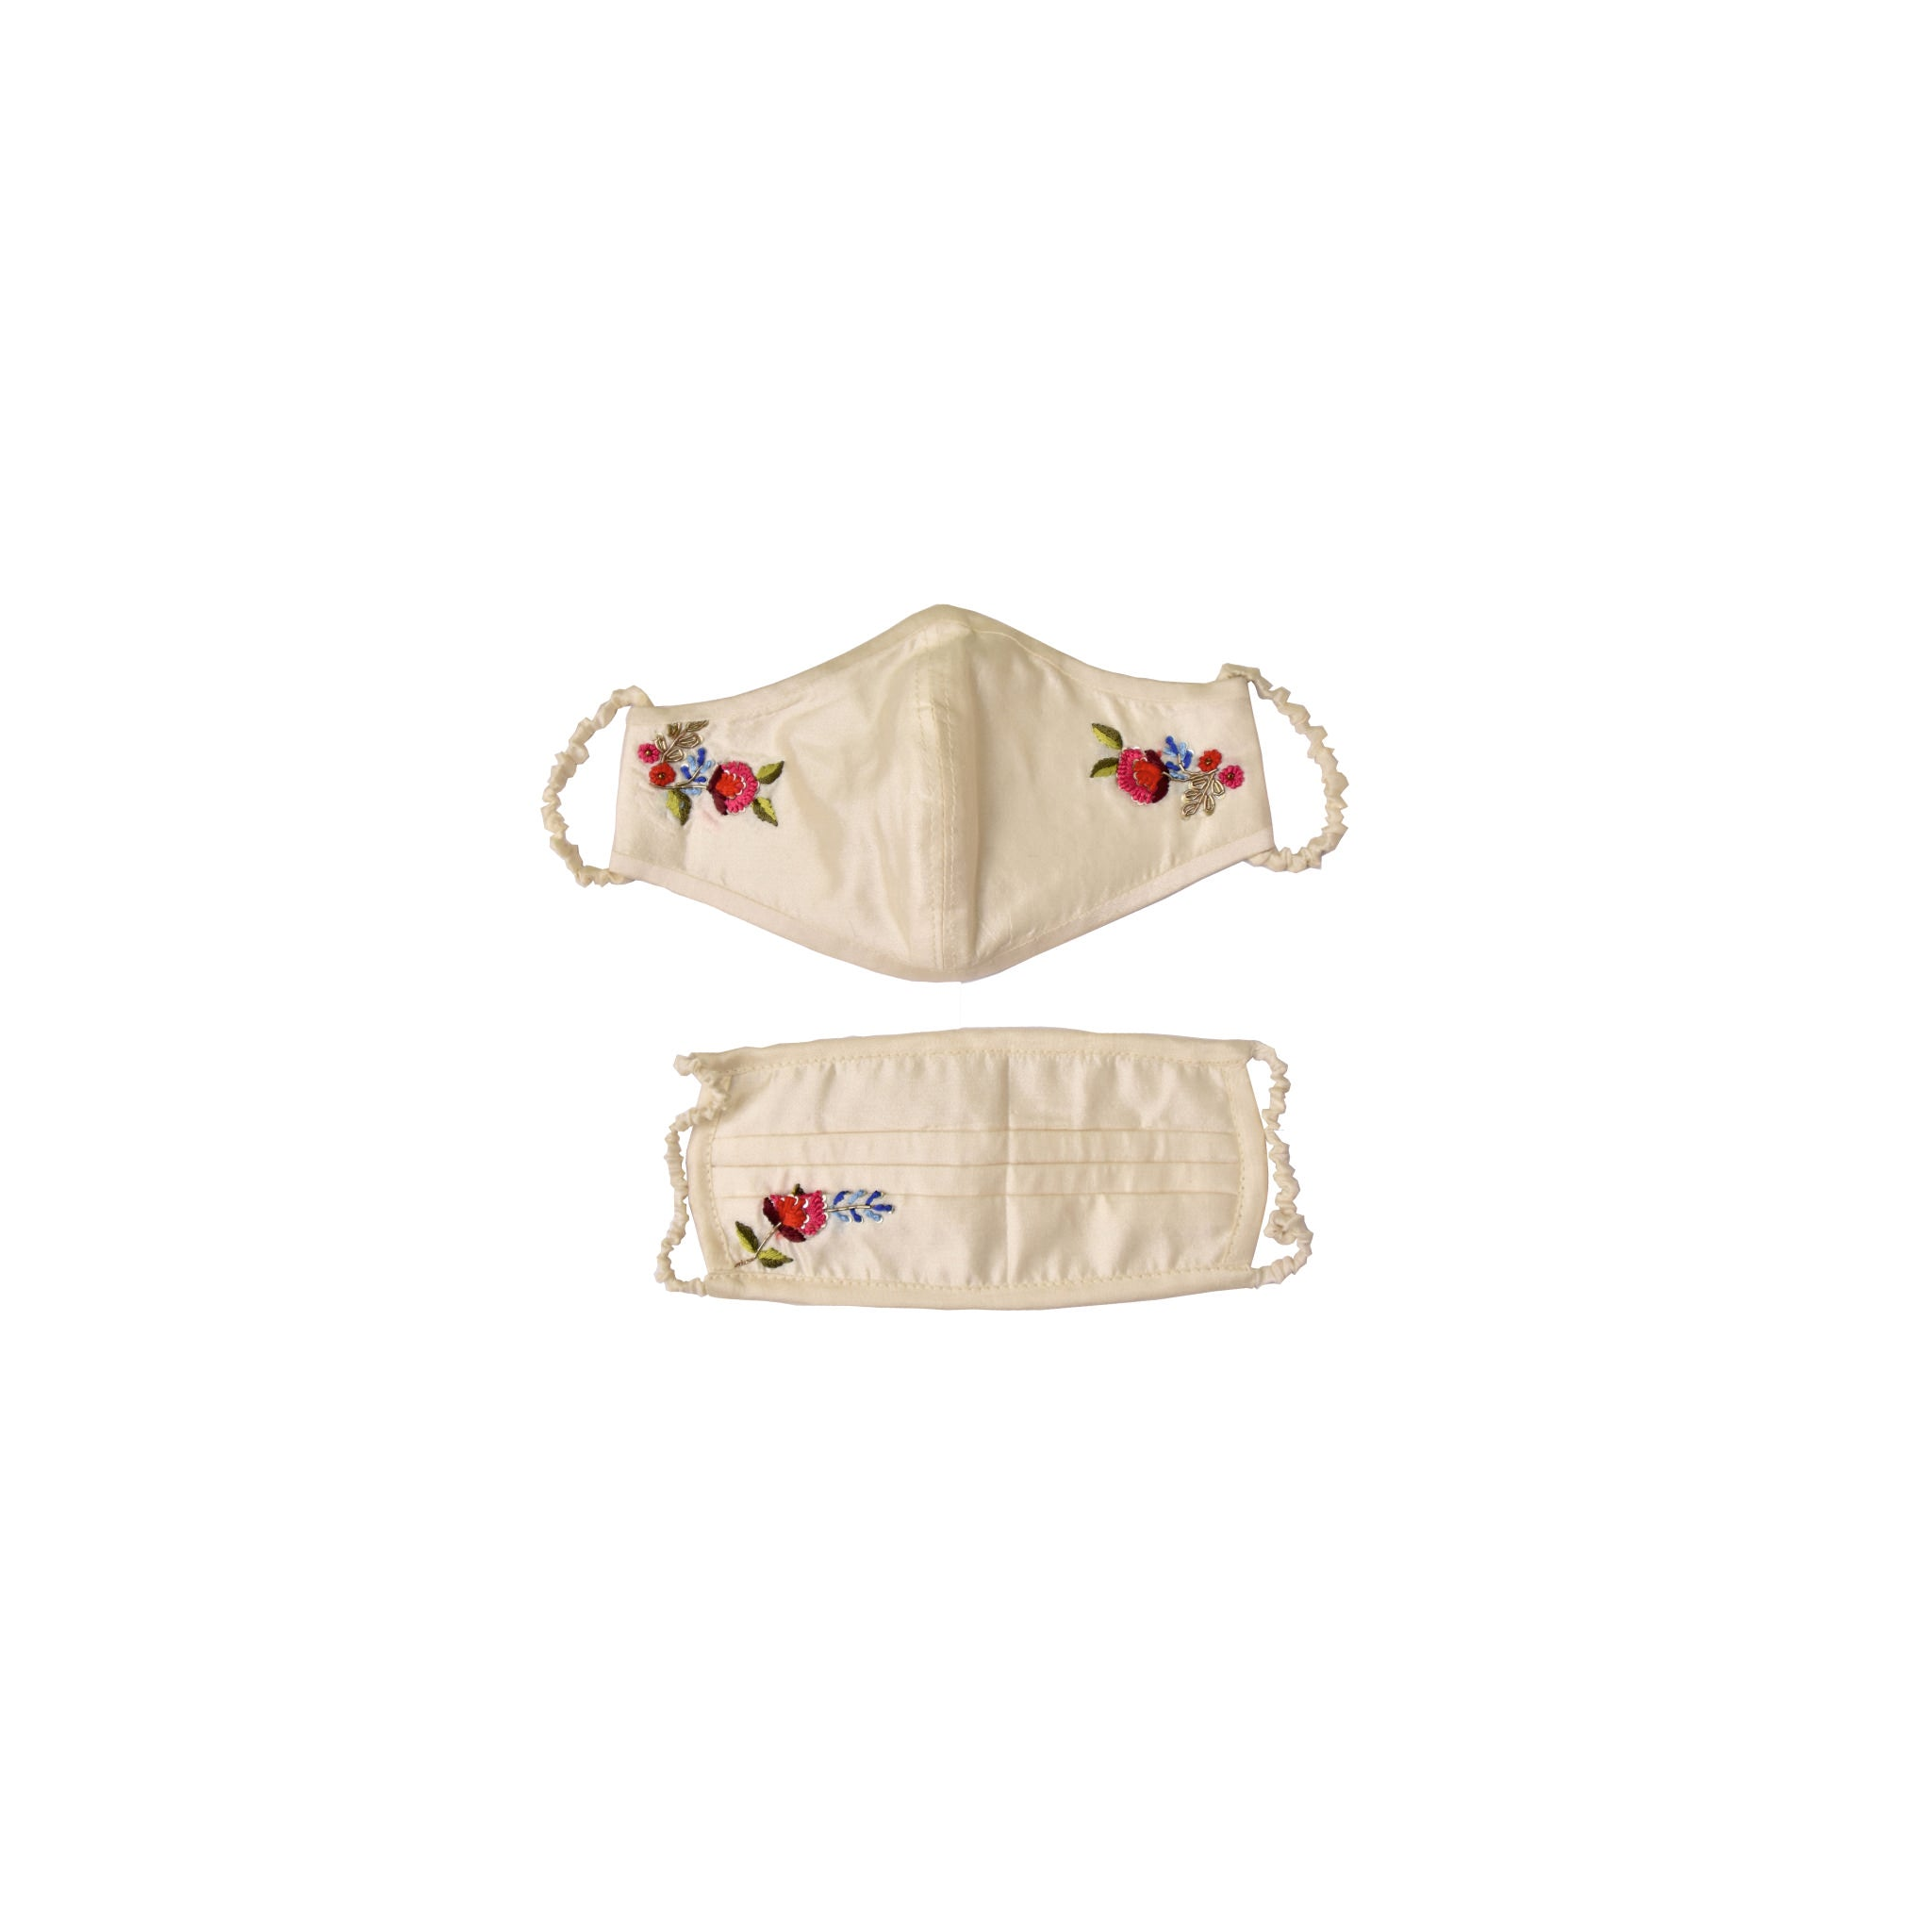 Ivory Hand Embroidered cotton based safety essential kit